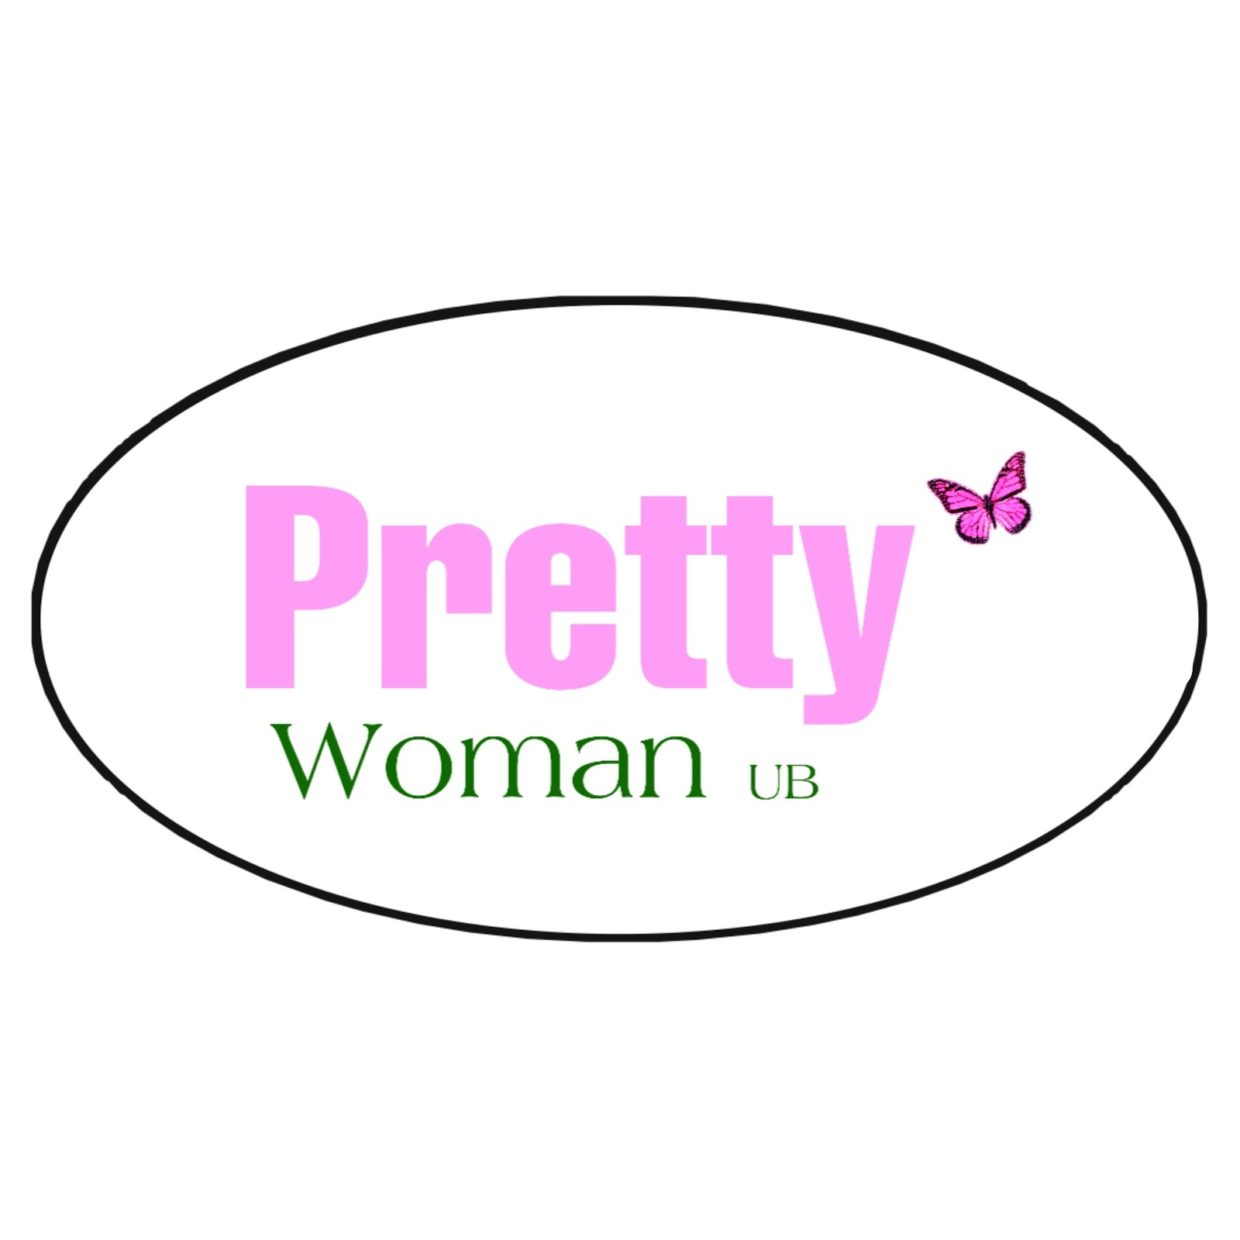 Pretty Woman UB logo